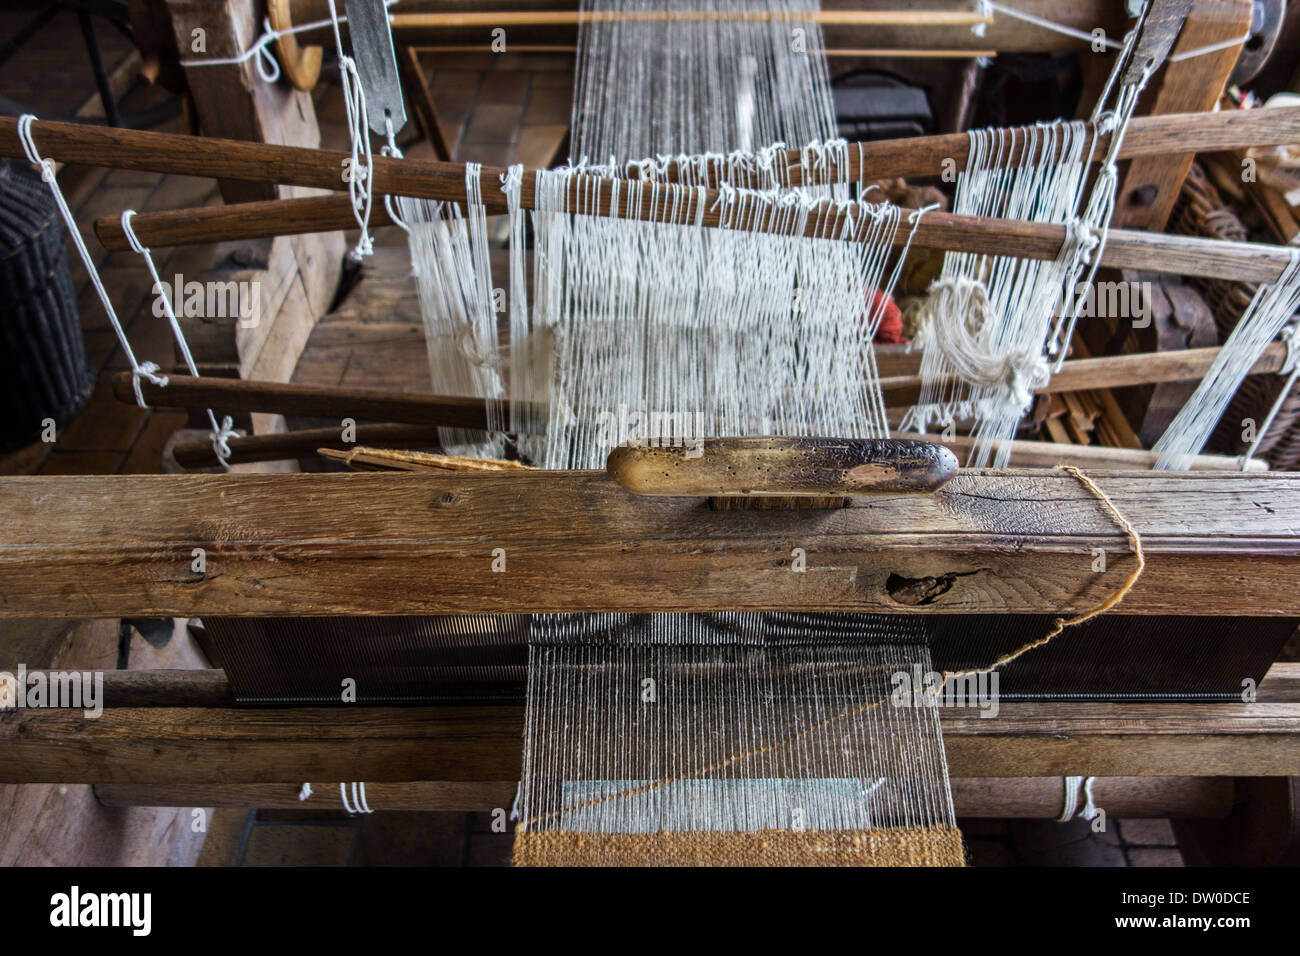 Old wooden eighteenth century hand loom showing heddles at MIAT, industrial archaeology museum, Ghent, Belgium - Stock Image